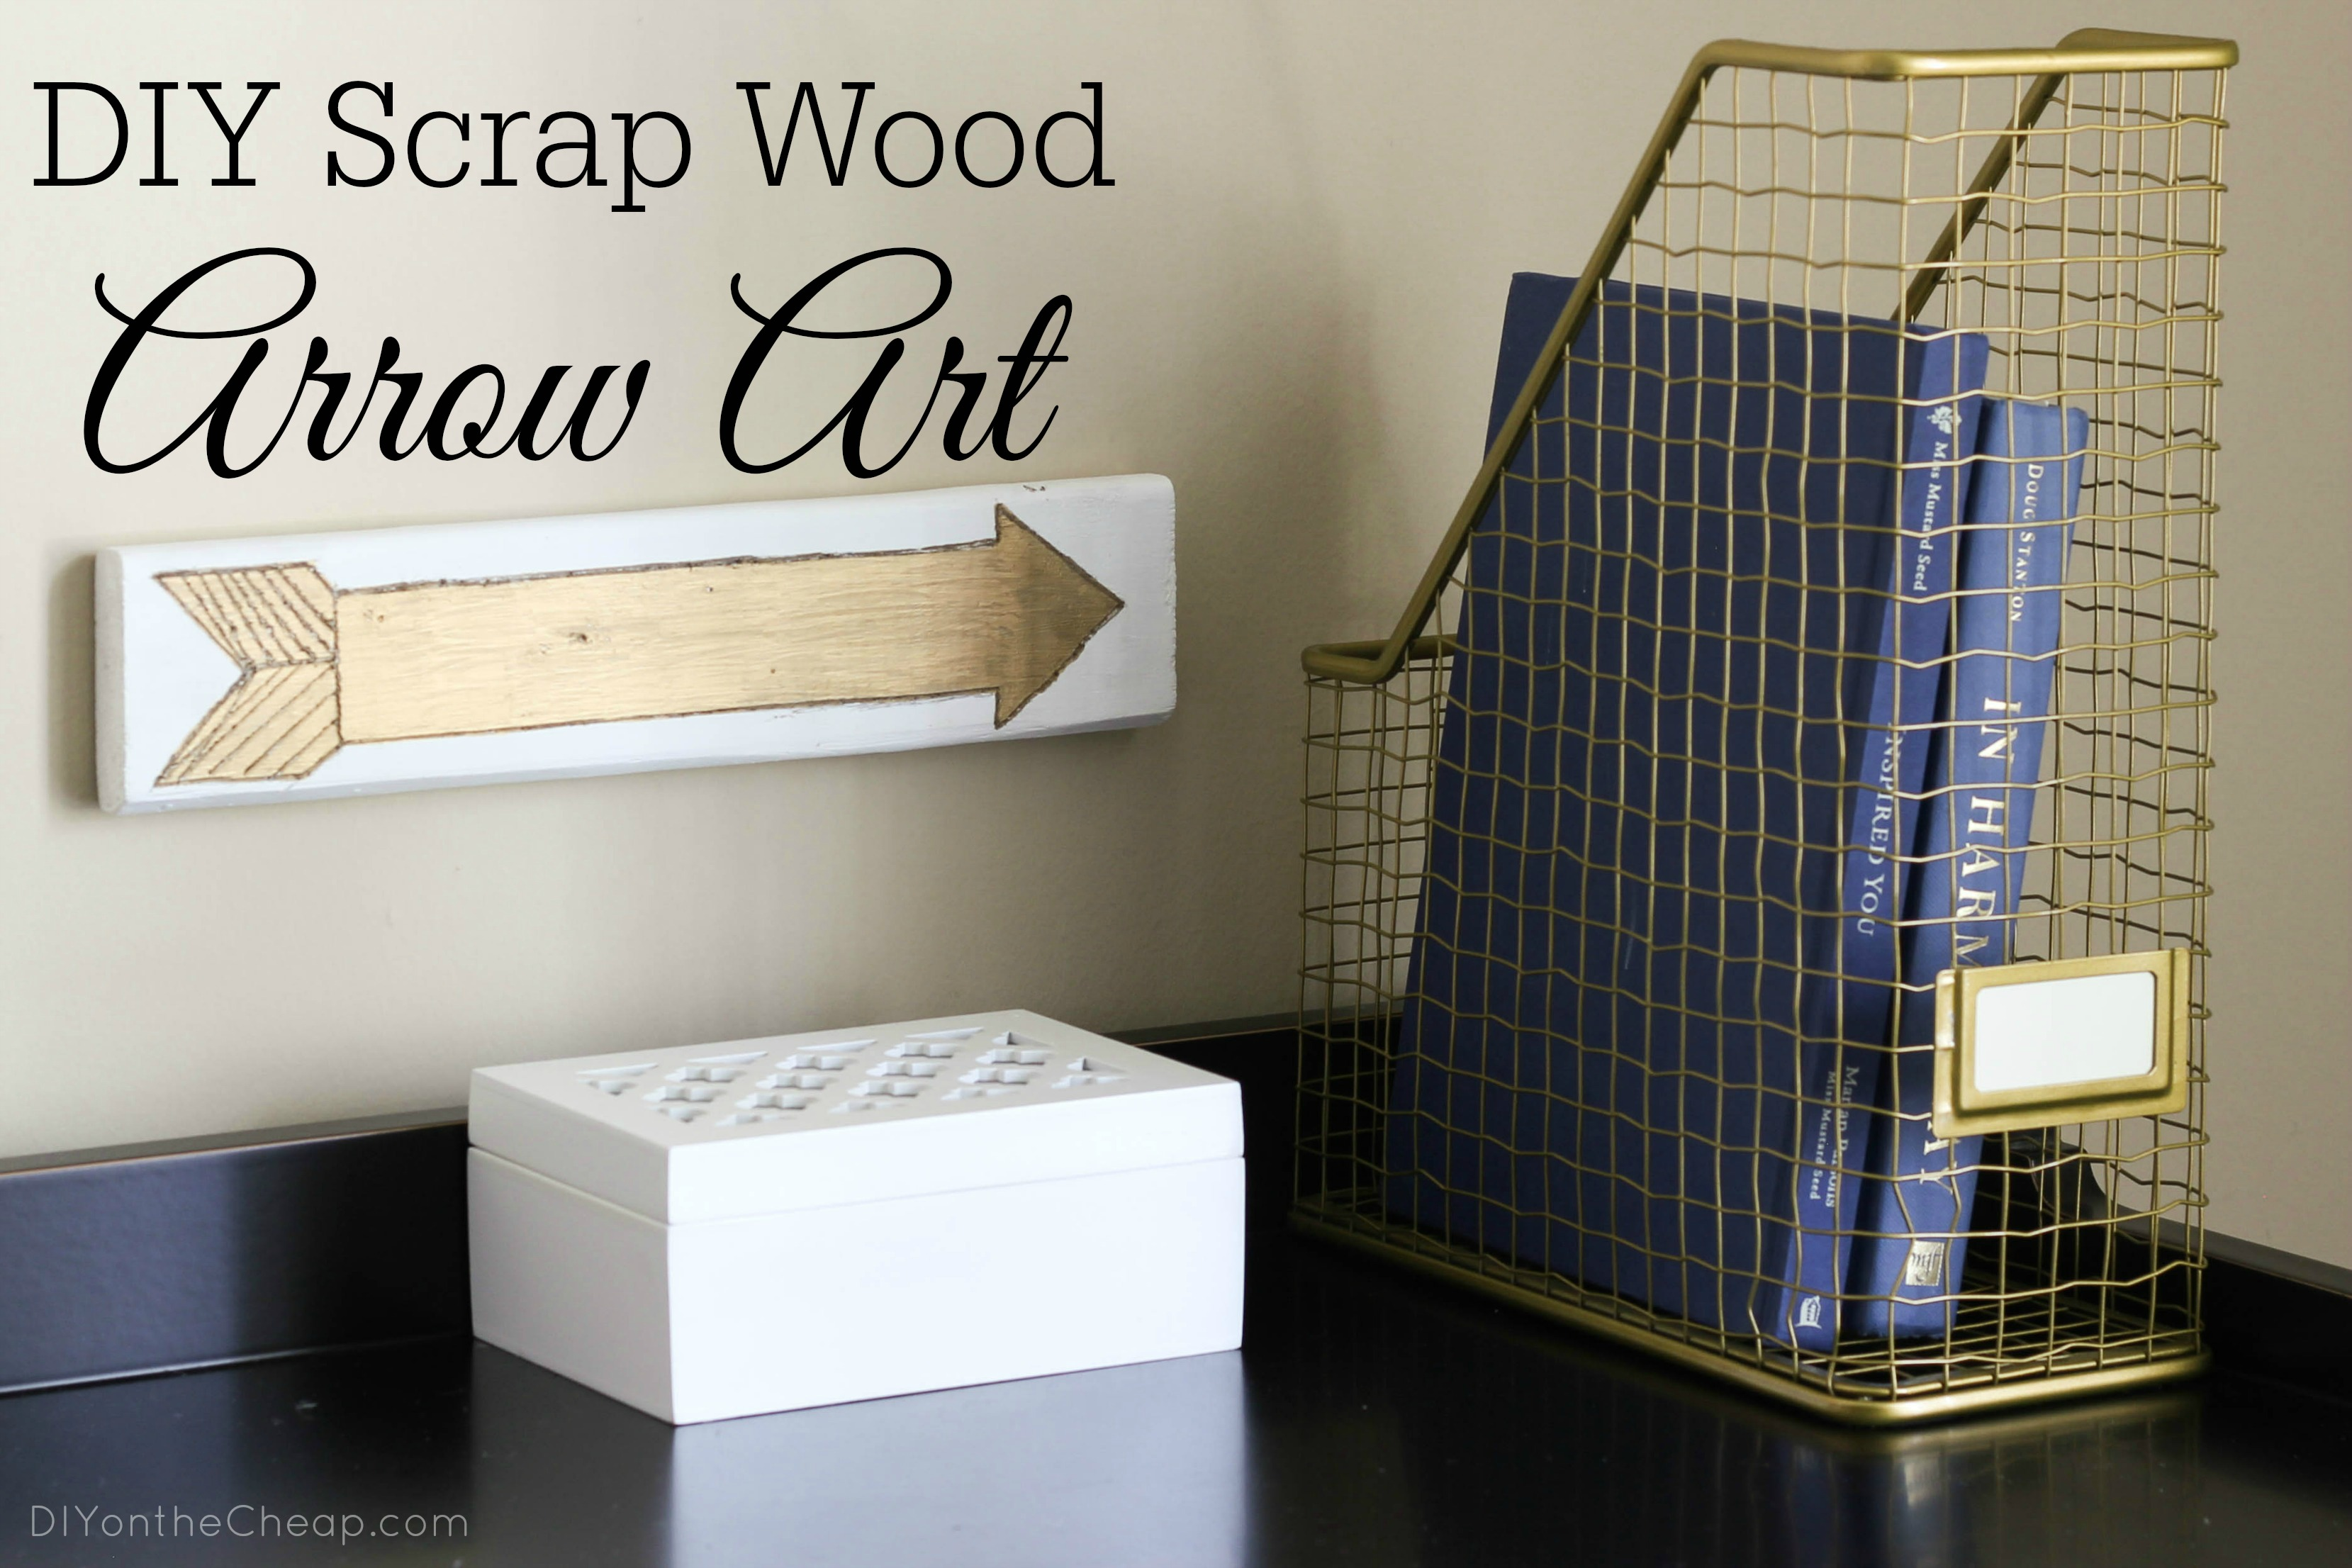 DIY Scrap Wood Arrow Art + Dremel Micro